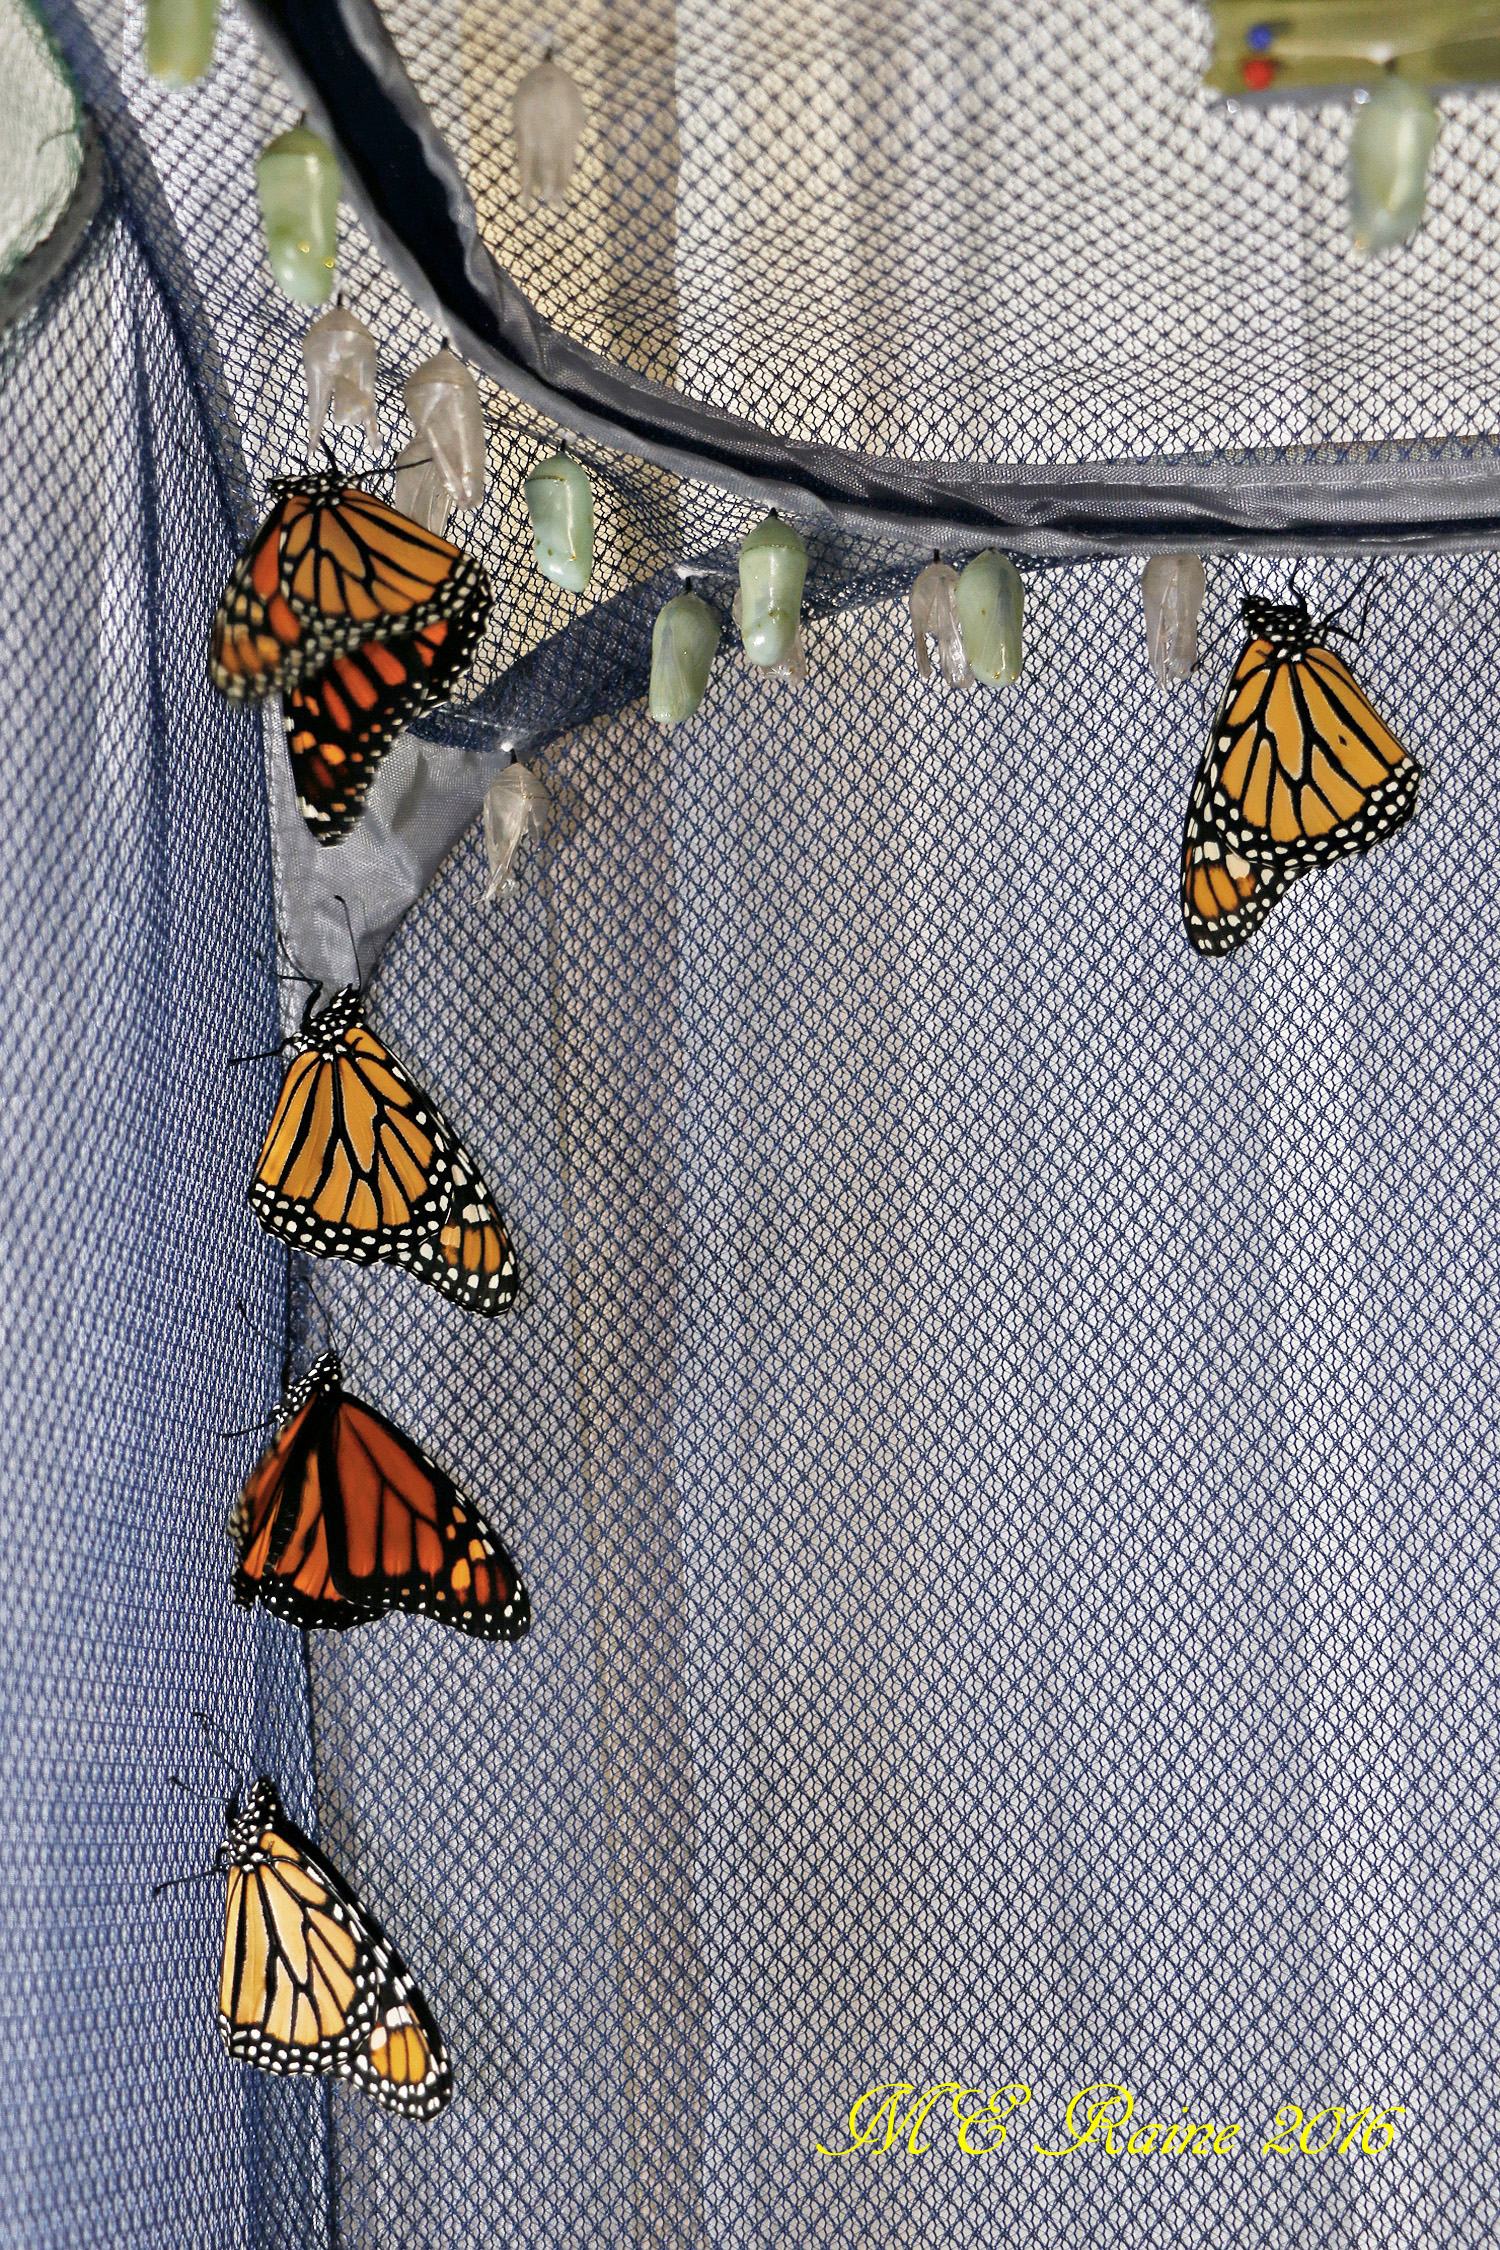 monarch-butterfly-of-maturity-in-safe-house-1-nos-9-12-n-13th-091916-10am-ok-wm